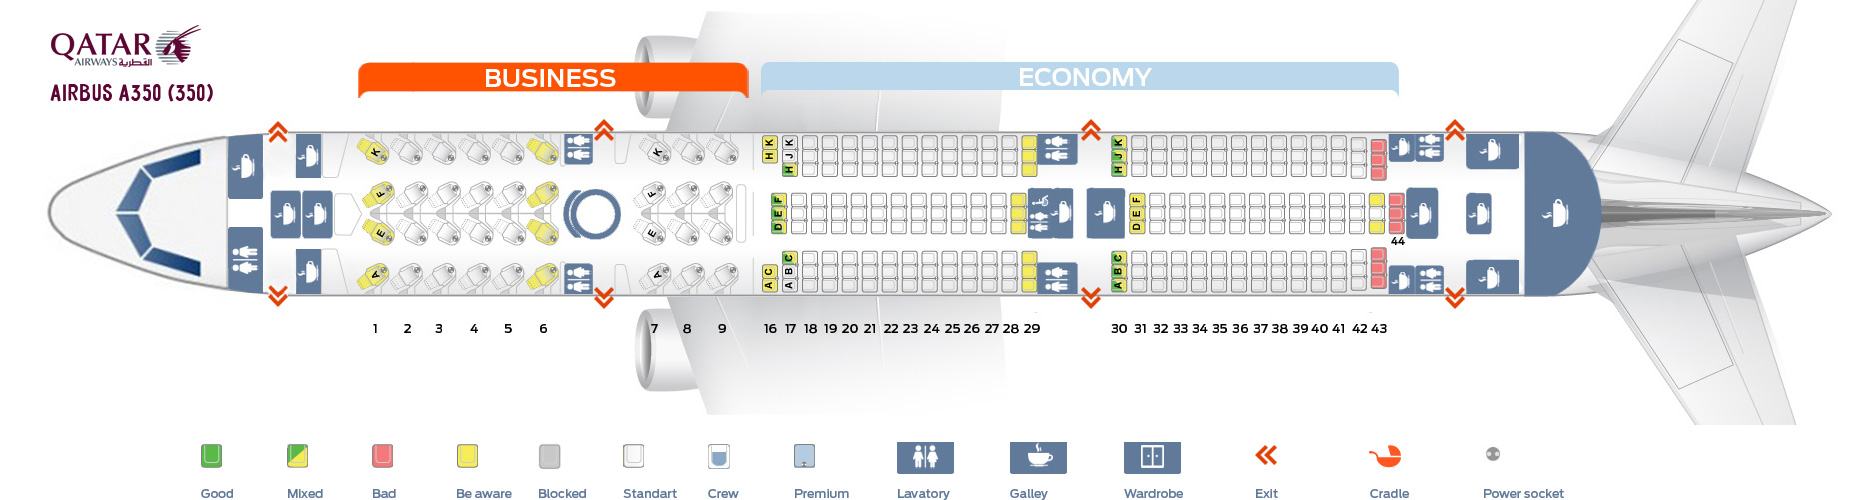 Seat Map Airbus A350-900 Qatar Airways